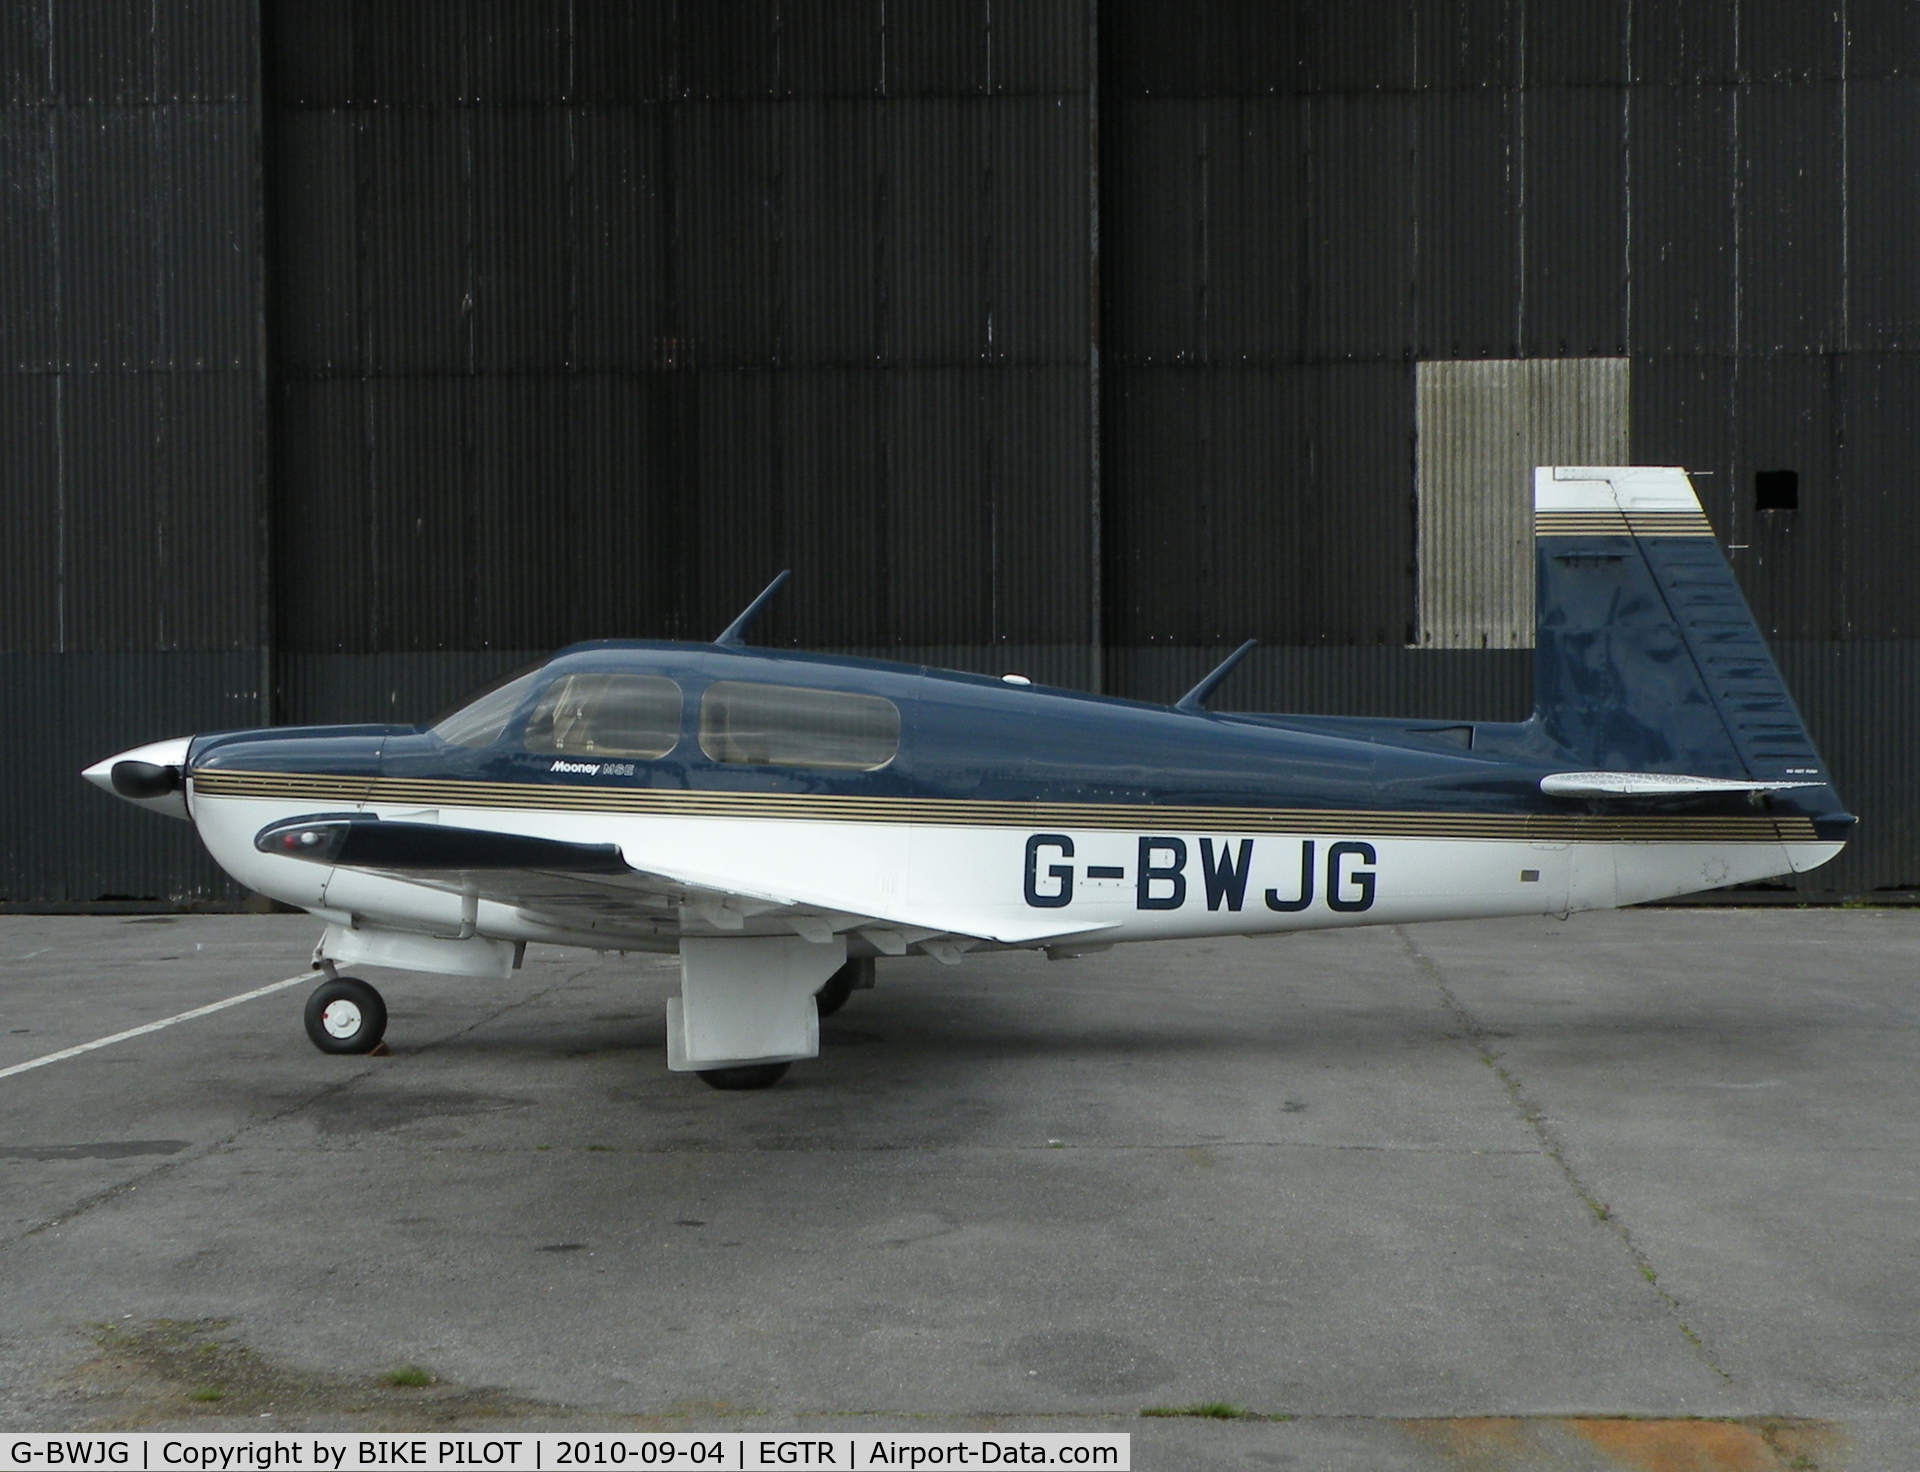 G-BWJG, 1993 Mooney M20J 201 C/N 24-3319, Nice Mooney in front of the main hanger.